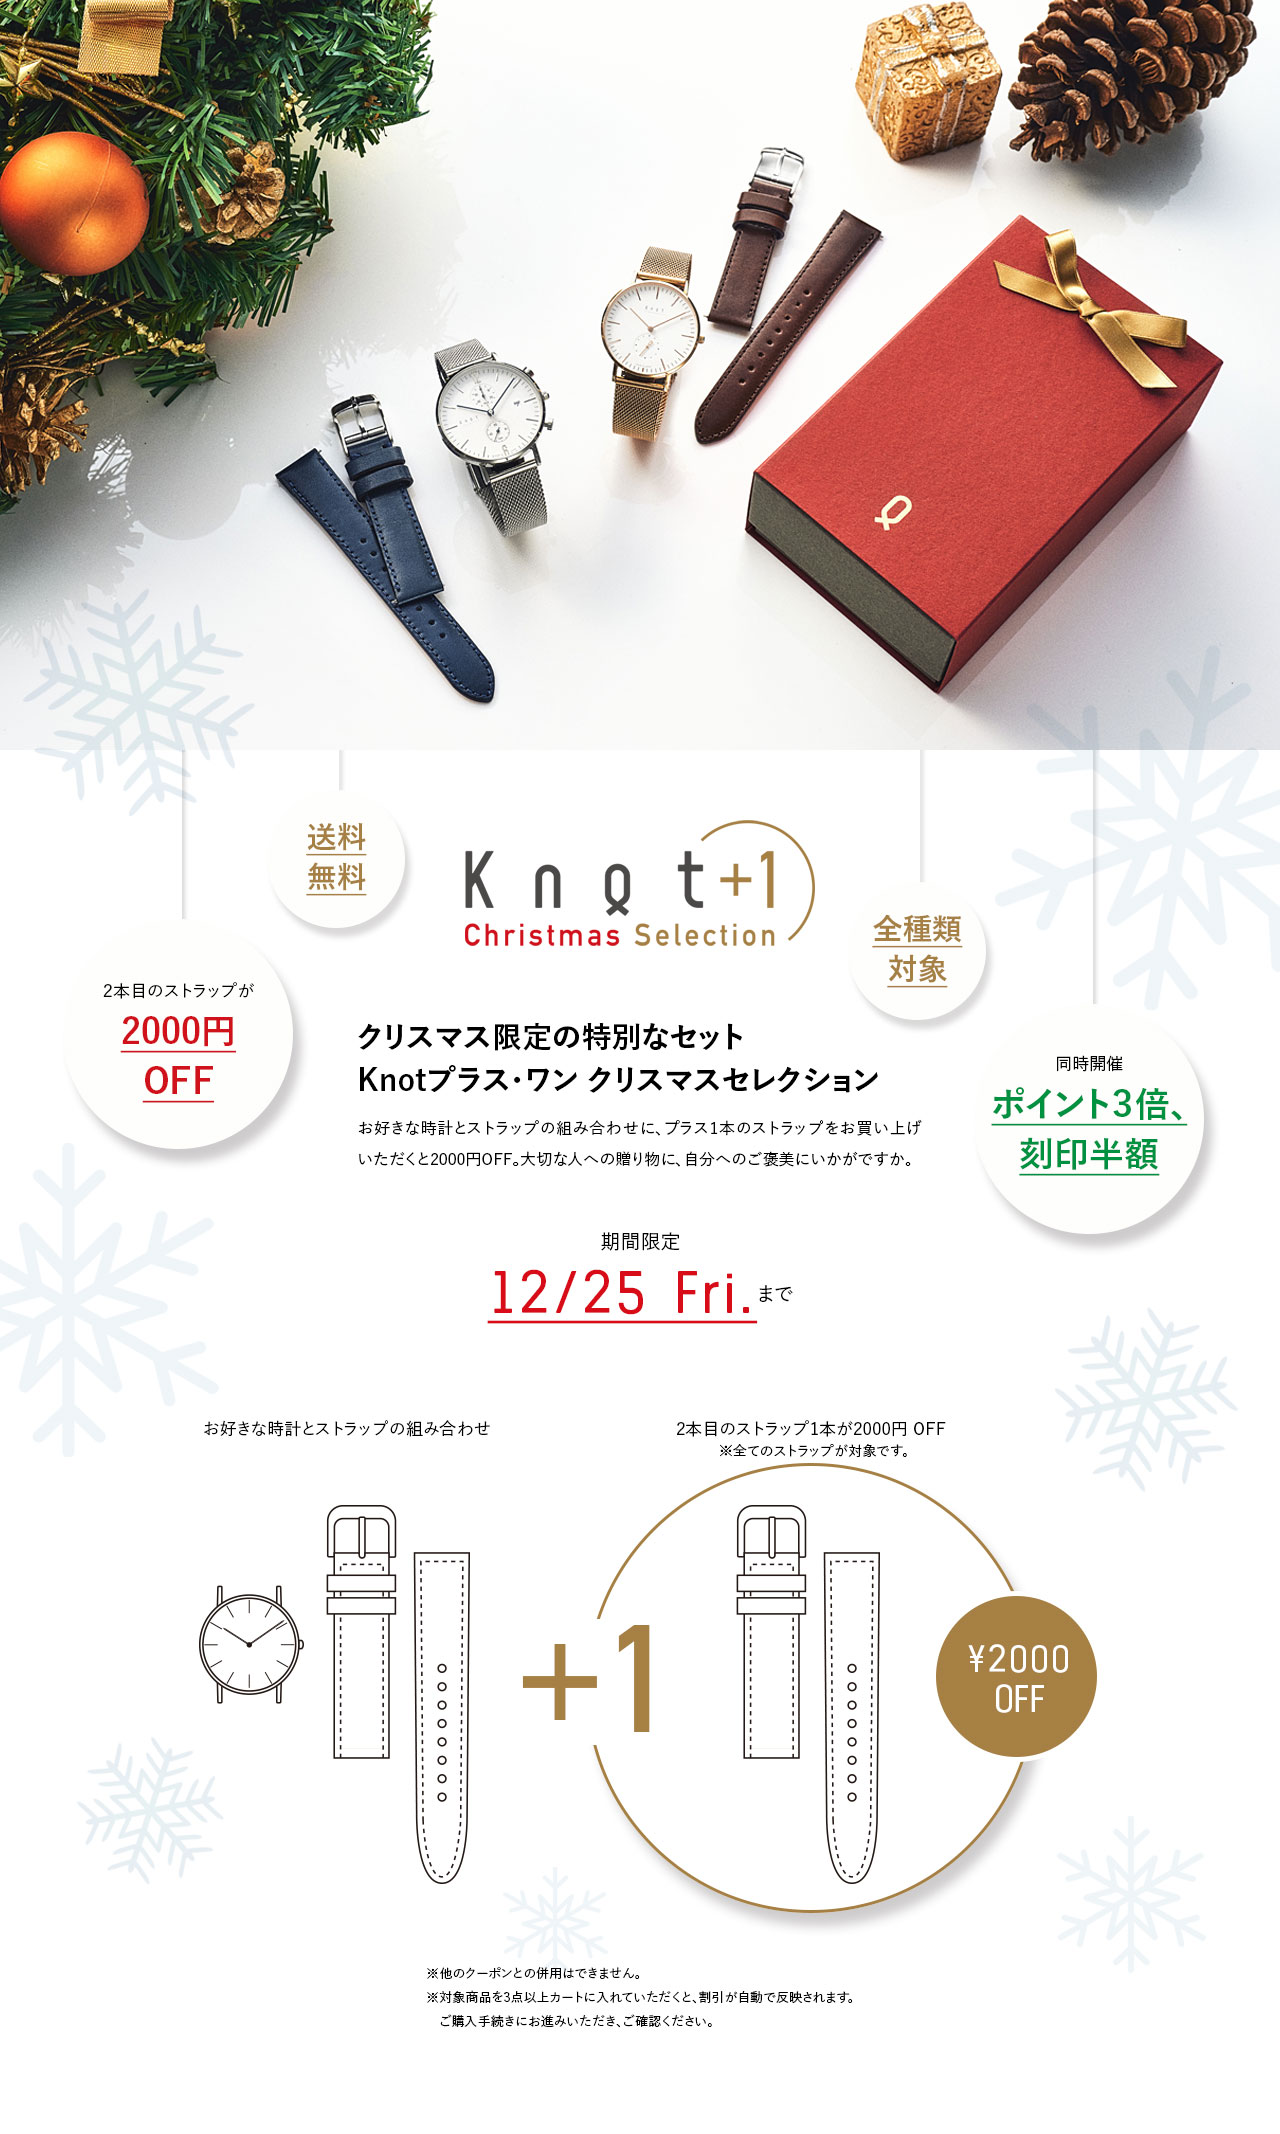 knot+1 Christmas Selection